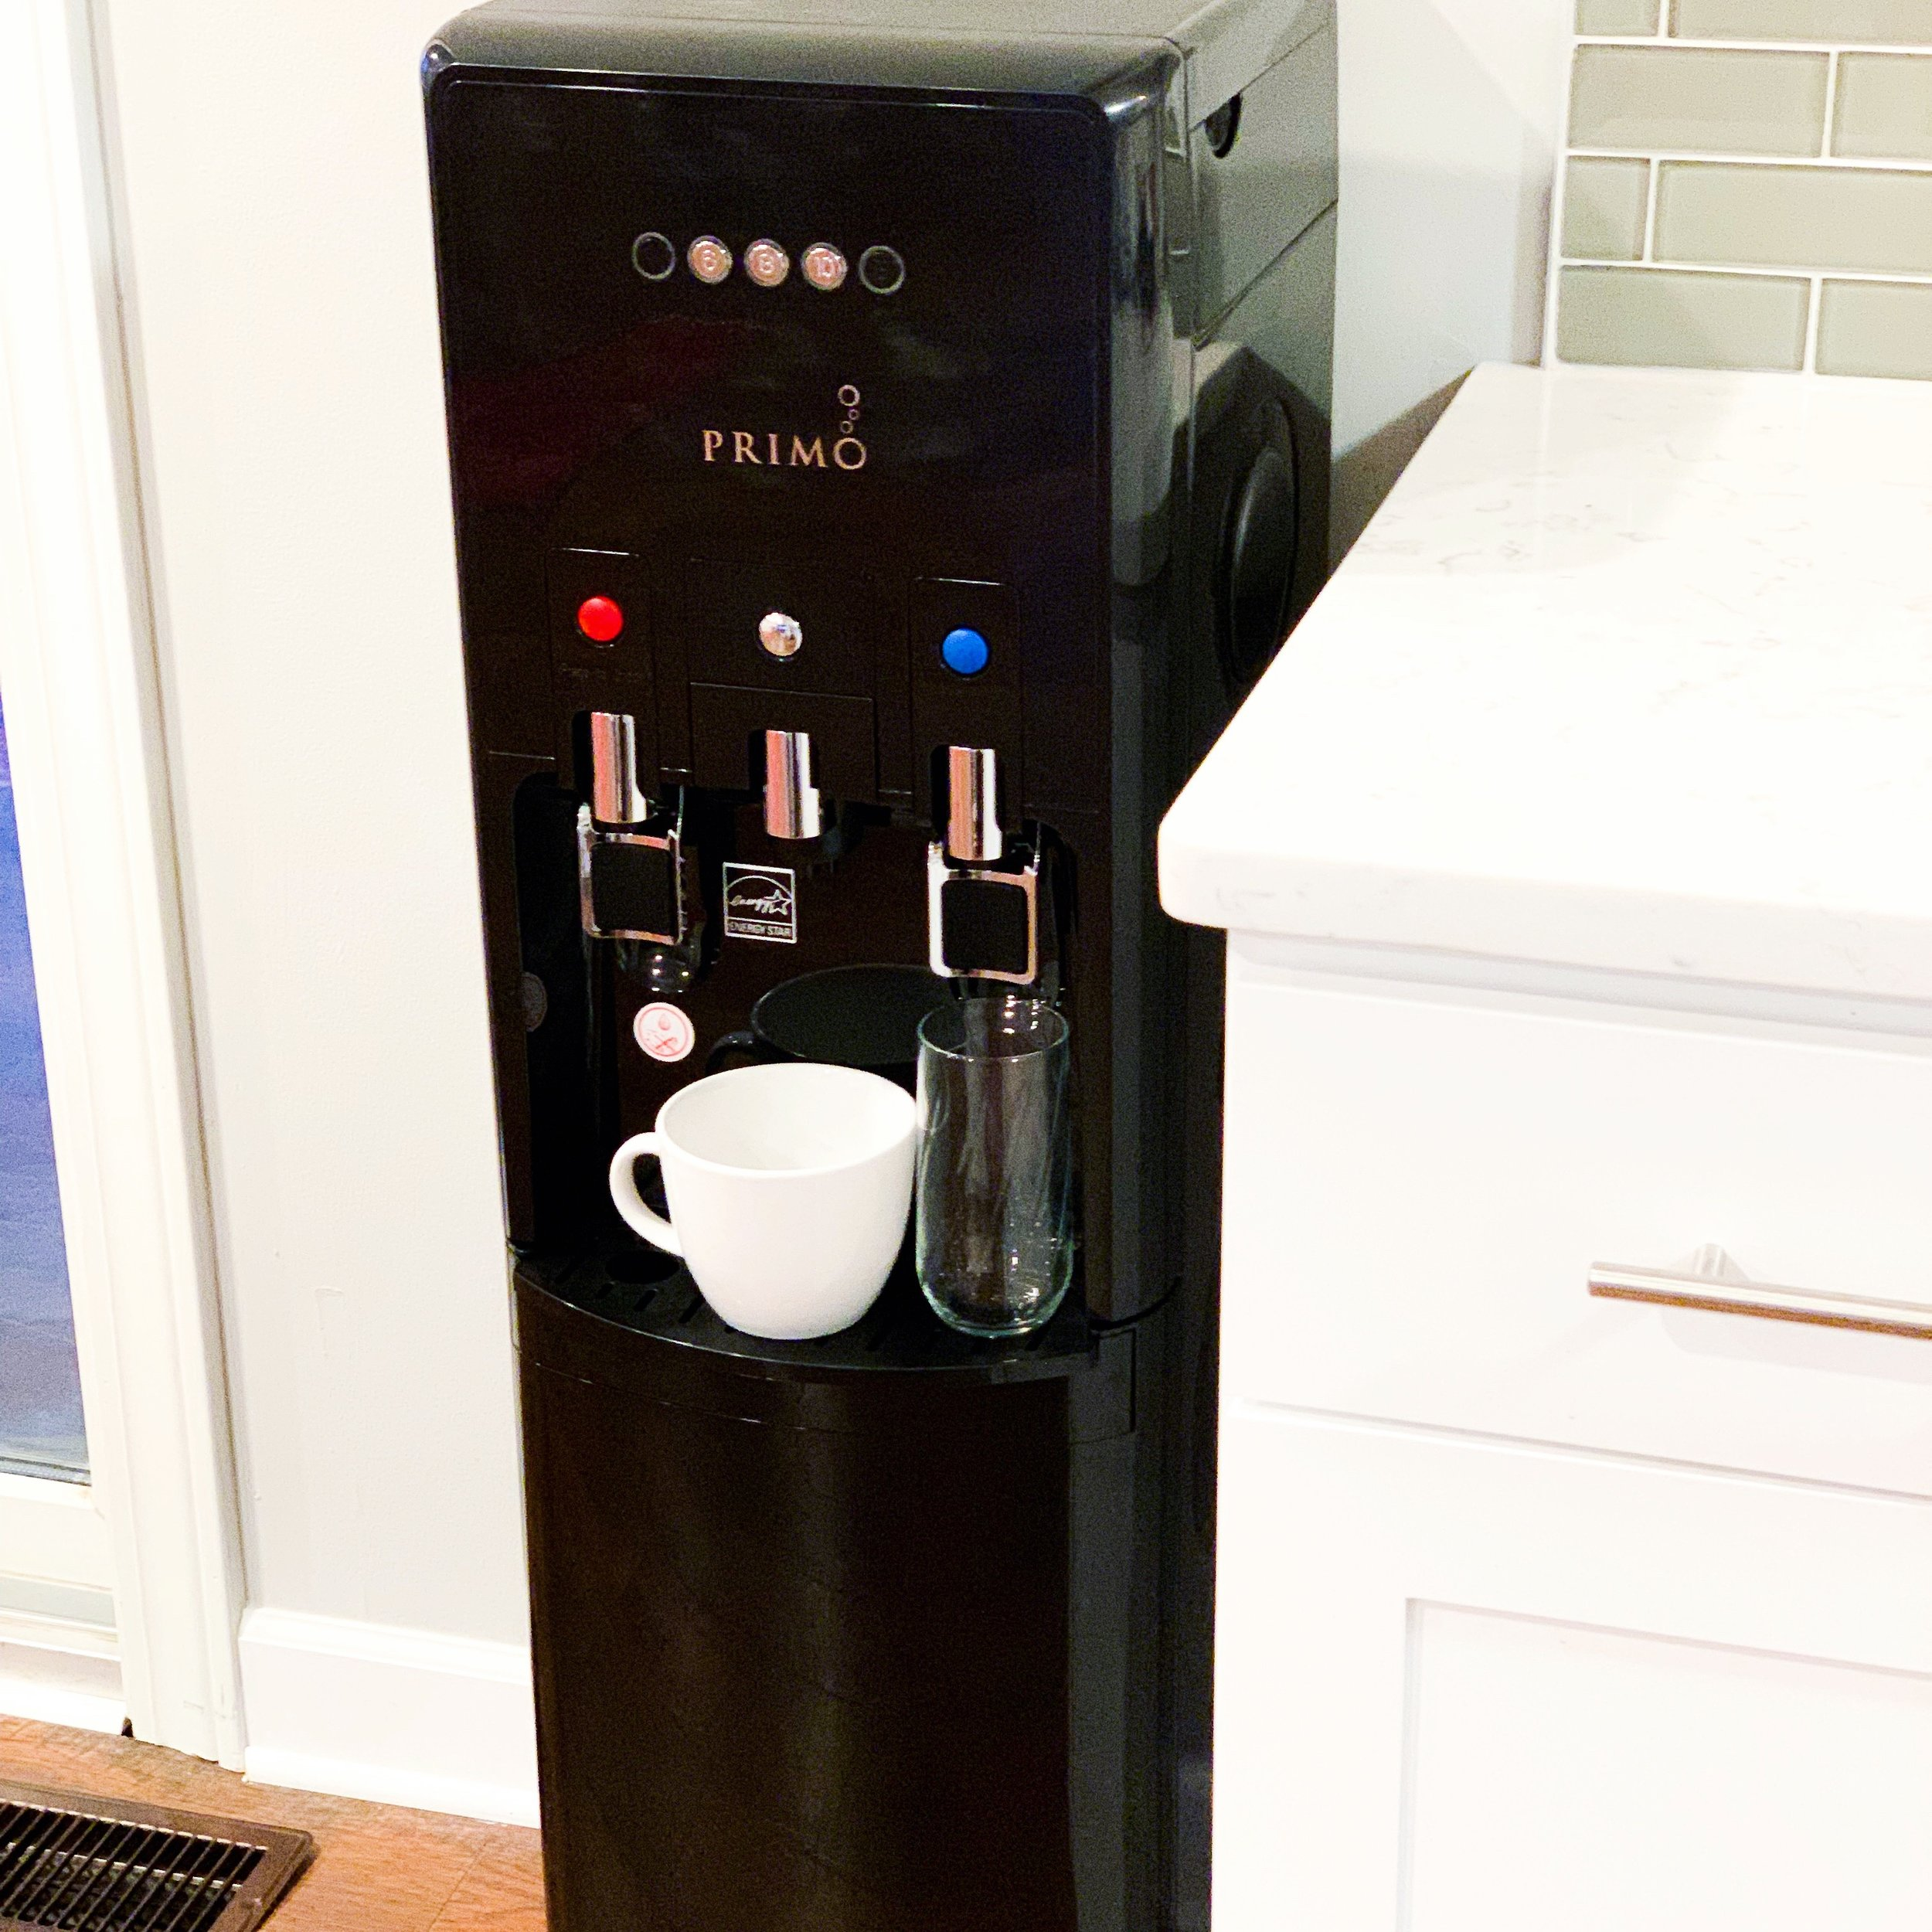 Primo Water Cooler - This sleek water cooler not only dispenses hot and cold water but also has a built in Keurig! SHOP HERE